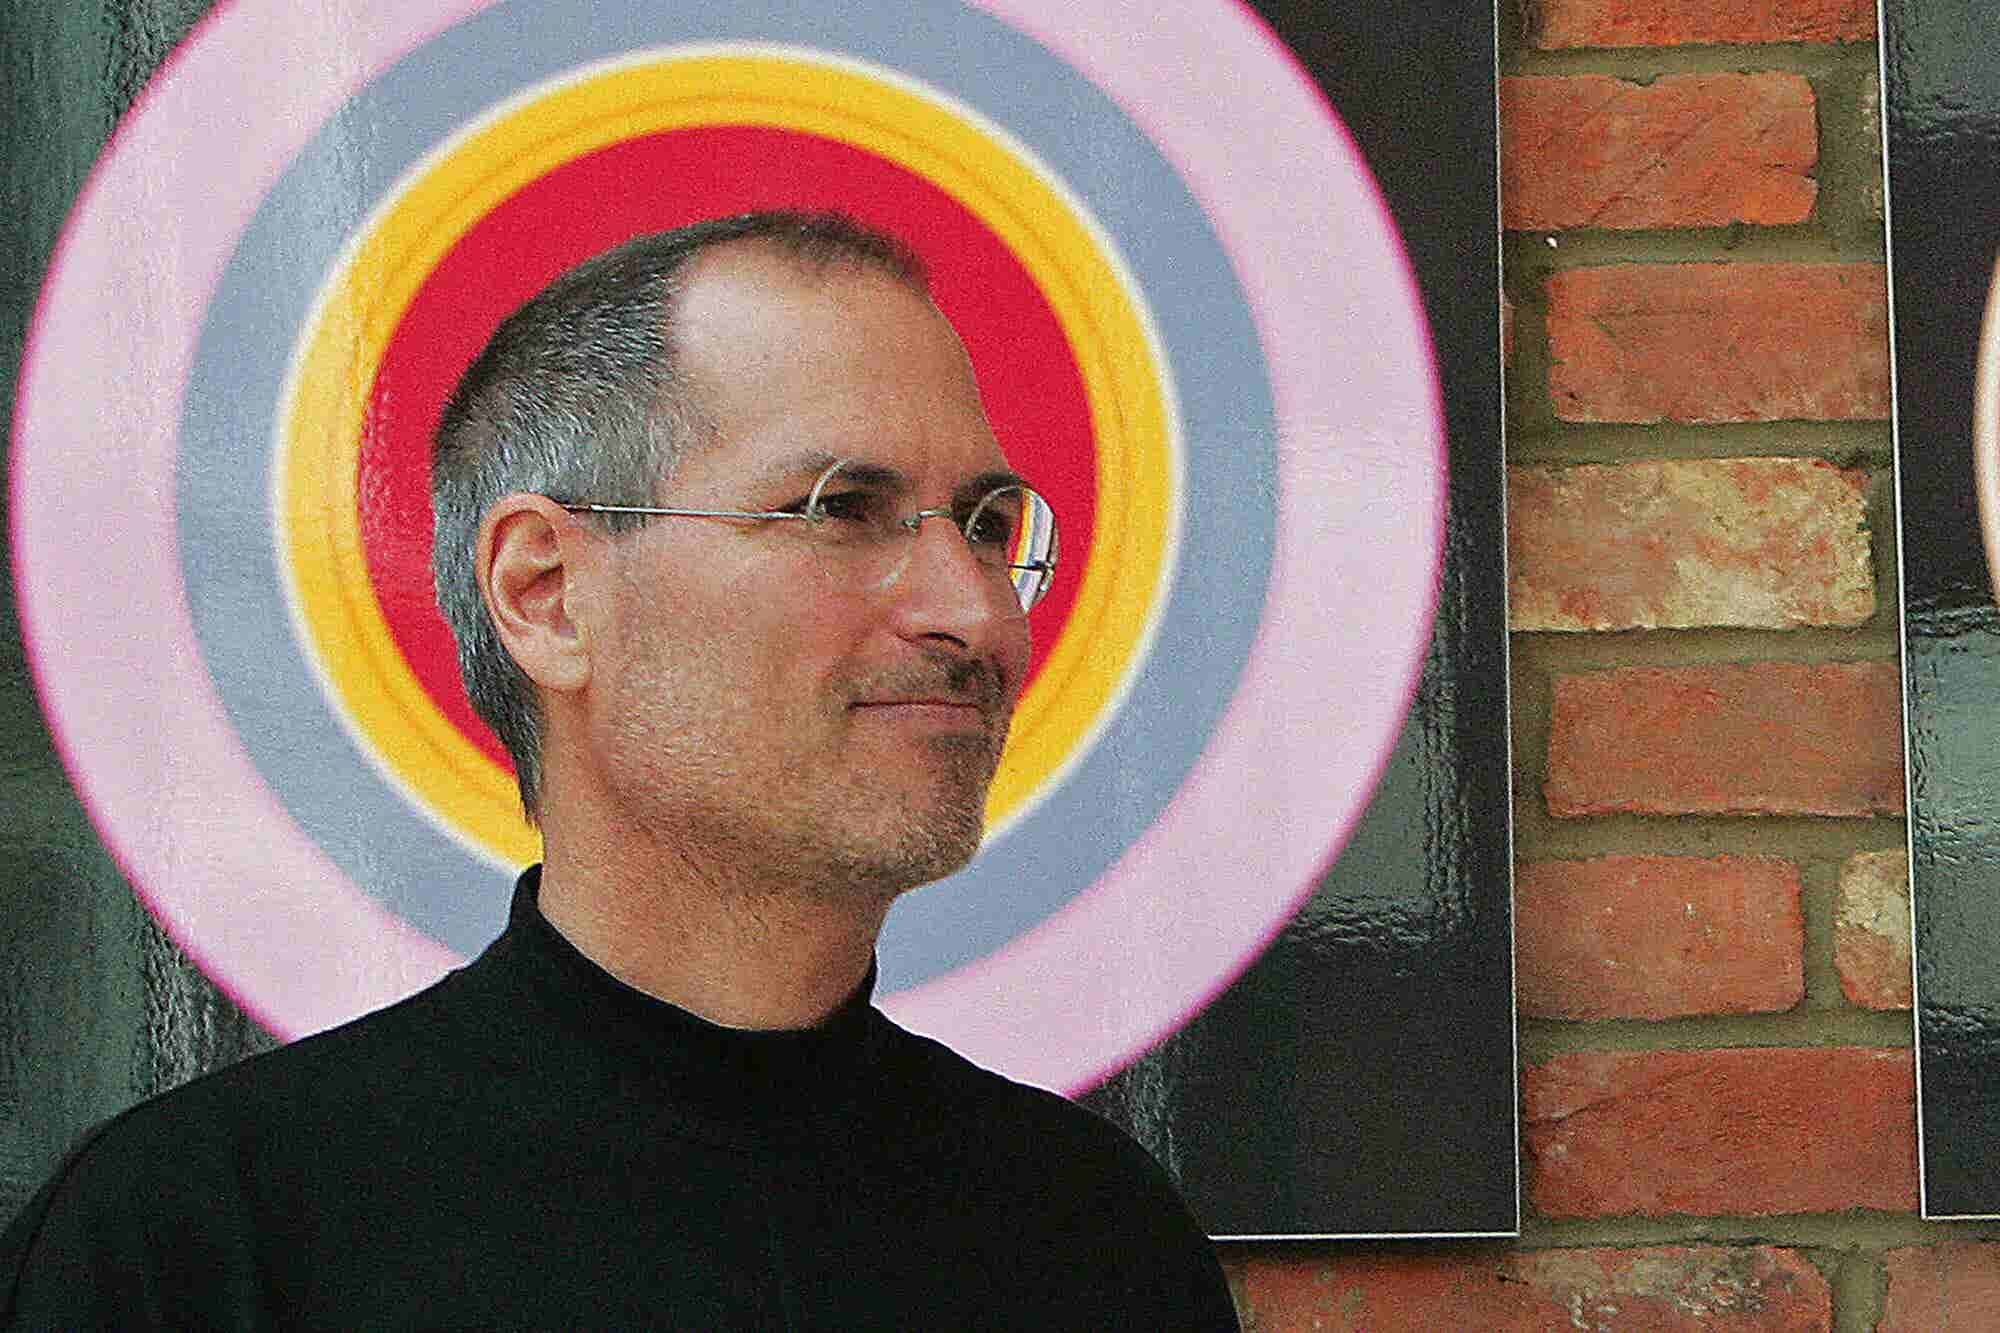 5 Inspirational Tips From My 'Day in the Life of Steve Jobs'